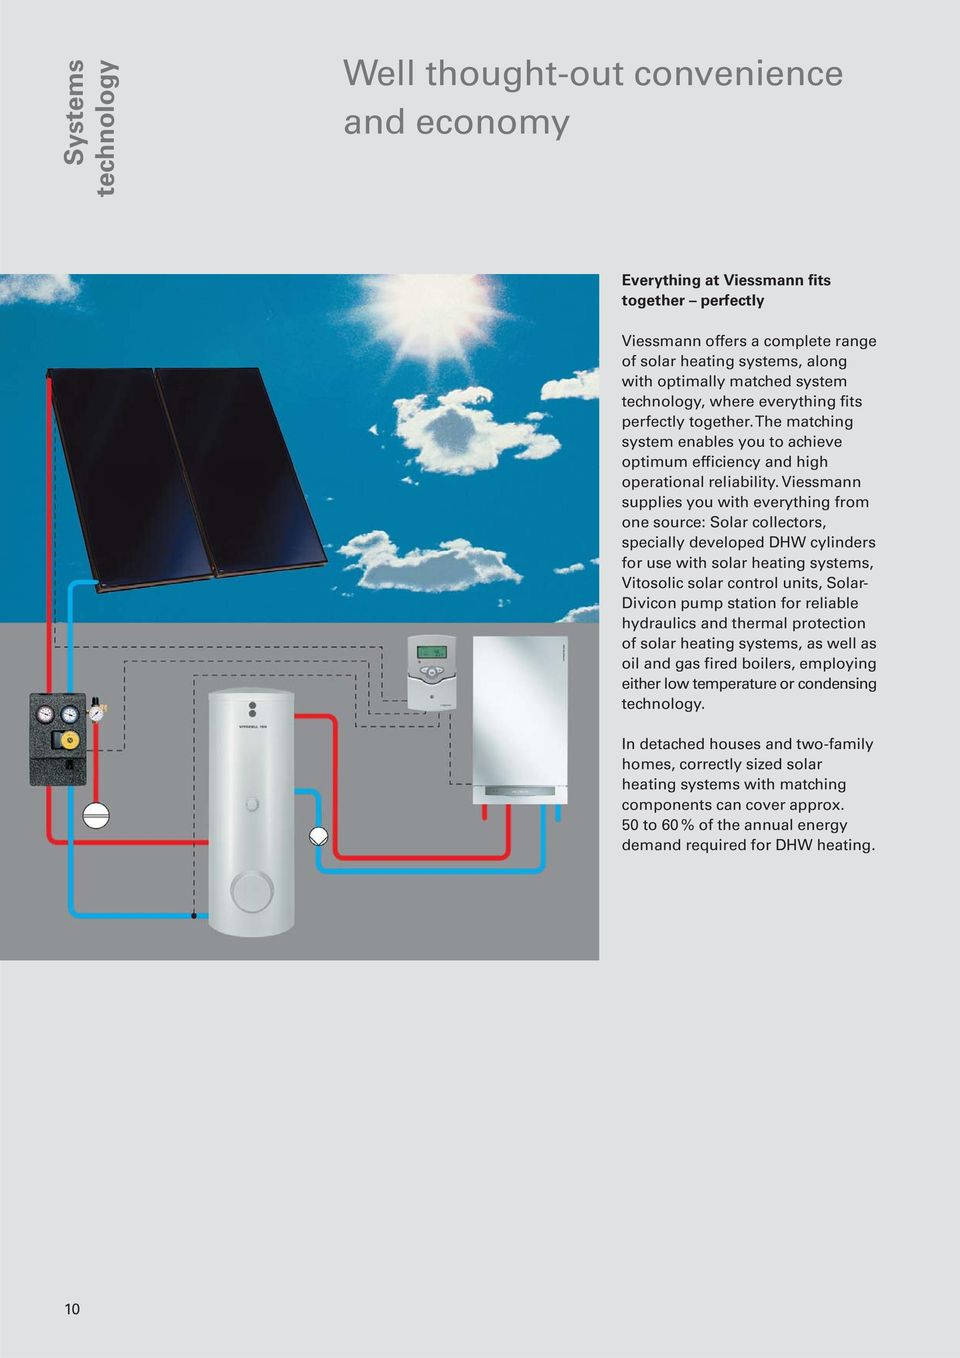 Viessmann supplies you with everything from one source: Solar collectors, specially developed DHW cylinders for use with solar heating systems, Vitosolic solar control units, Solar- Divicon pump